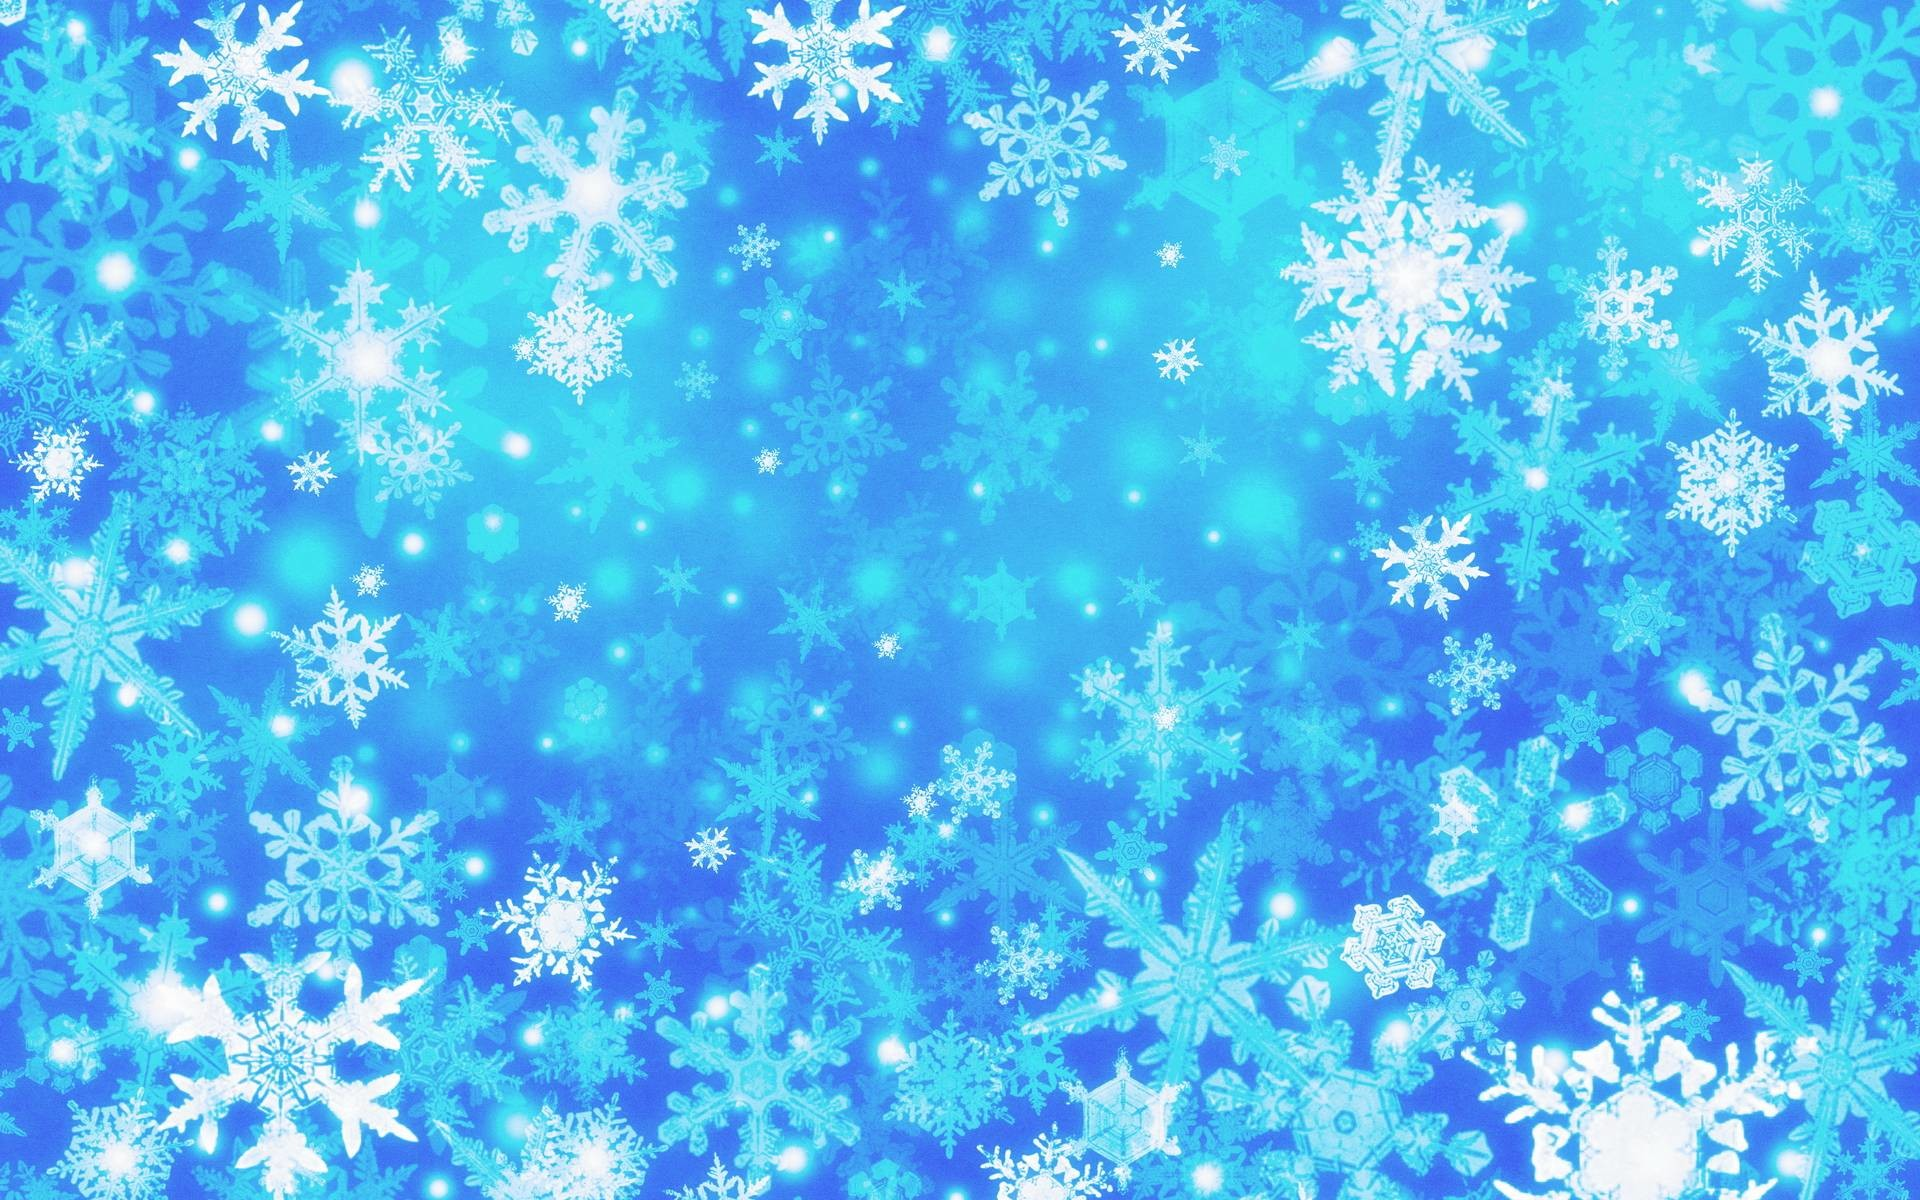 Animated Snow Falling Wallpaper Free Download Snow Background Pictures 59 Images